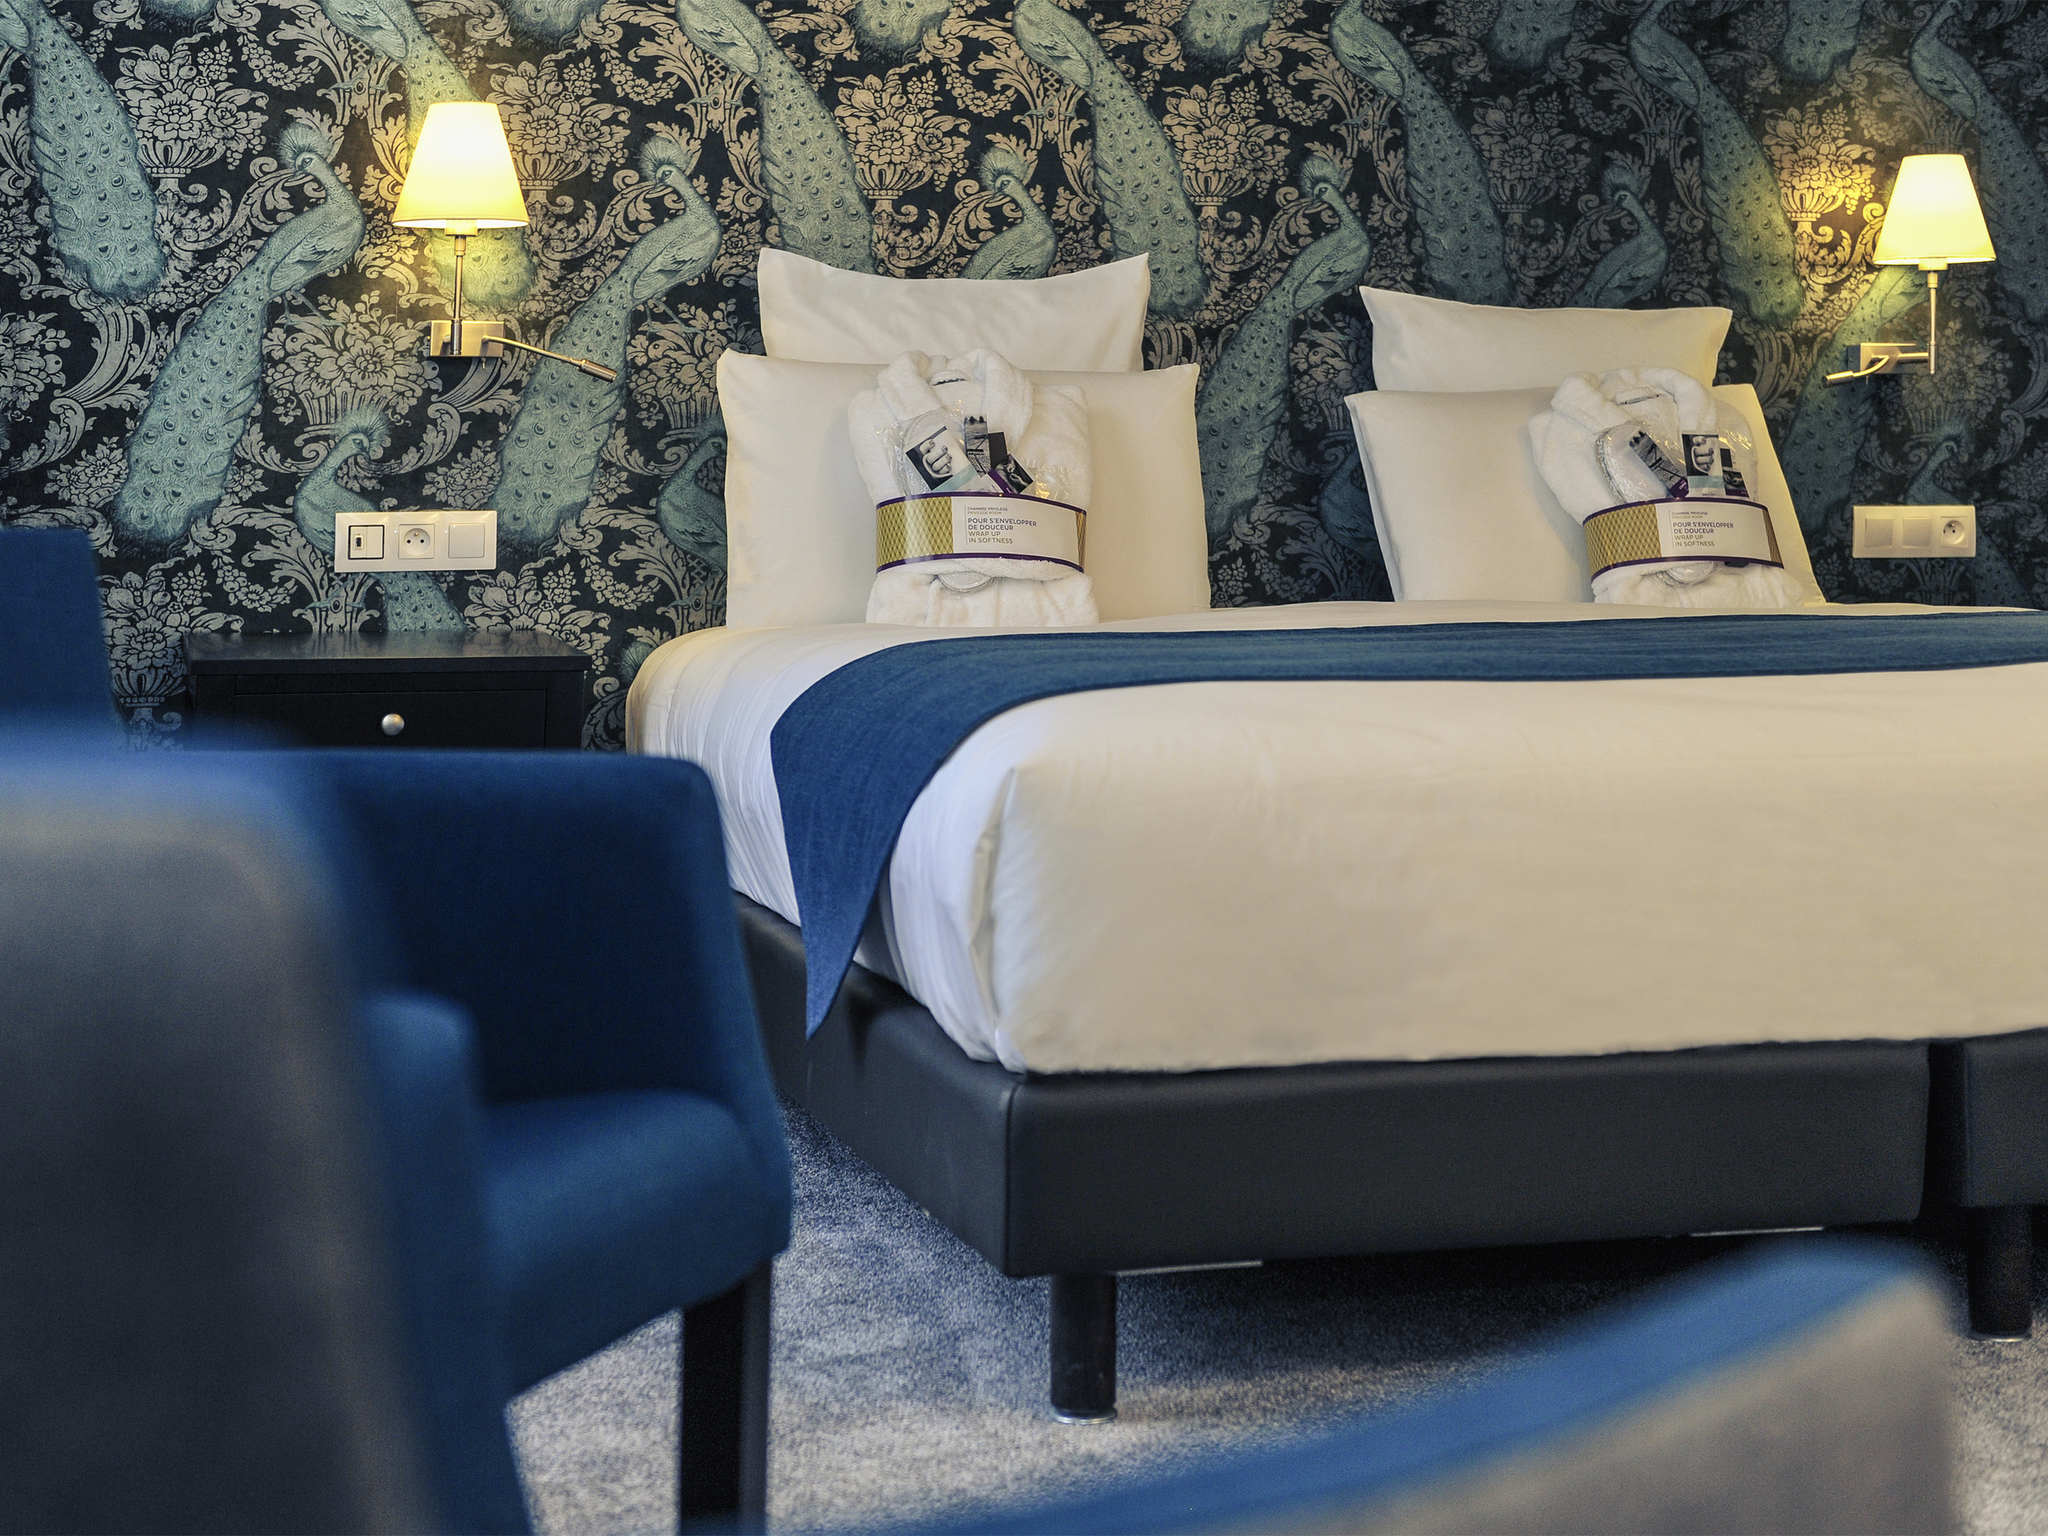 Hotel – Hôtel Mercure Paris Saint Cloud Hippodrome